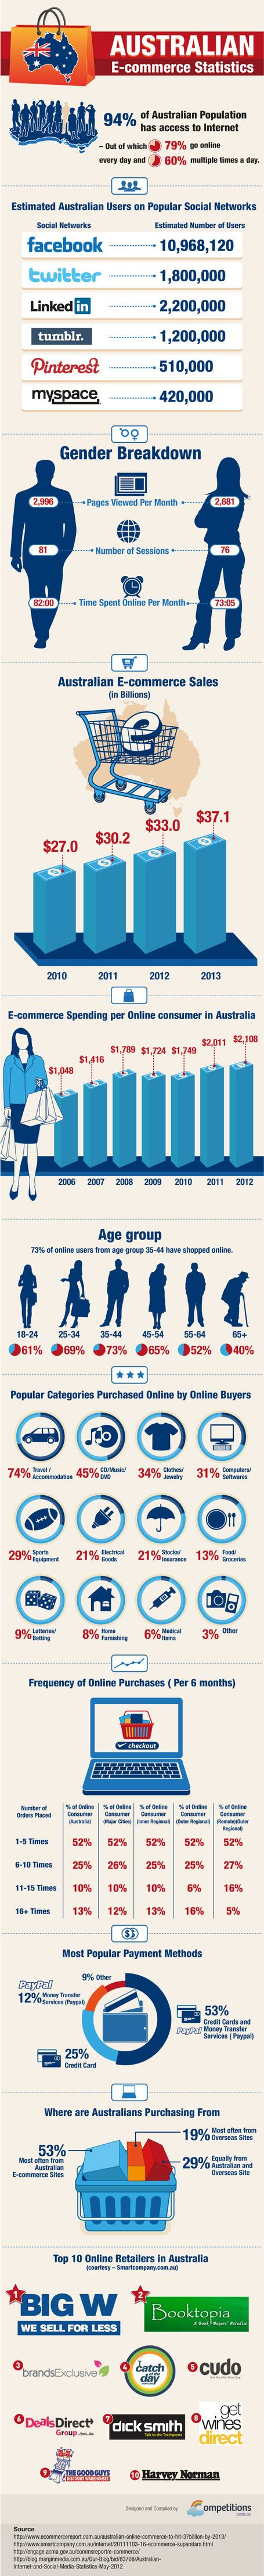 Analysis of Australian Ecommerce Statistics [Infographic] | Competitions.com.au Blog | Social Media in Australia + Asia Pacific | Scoop.it